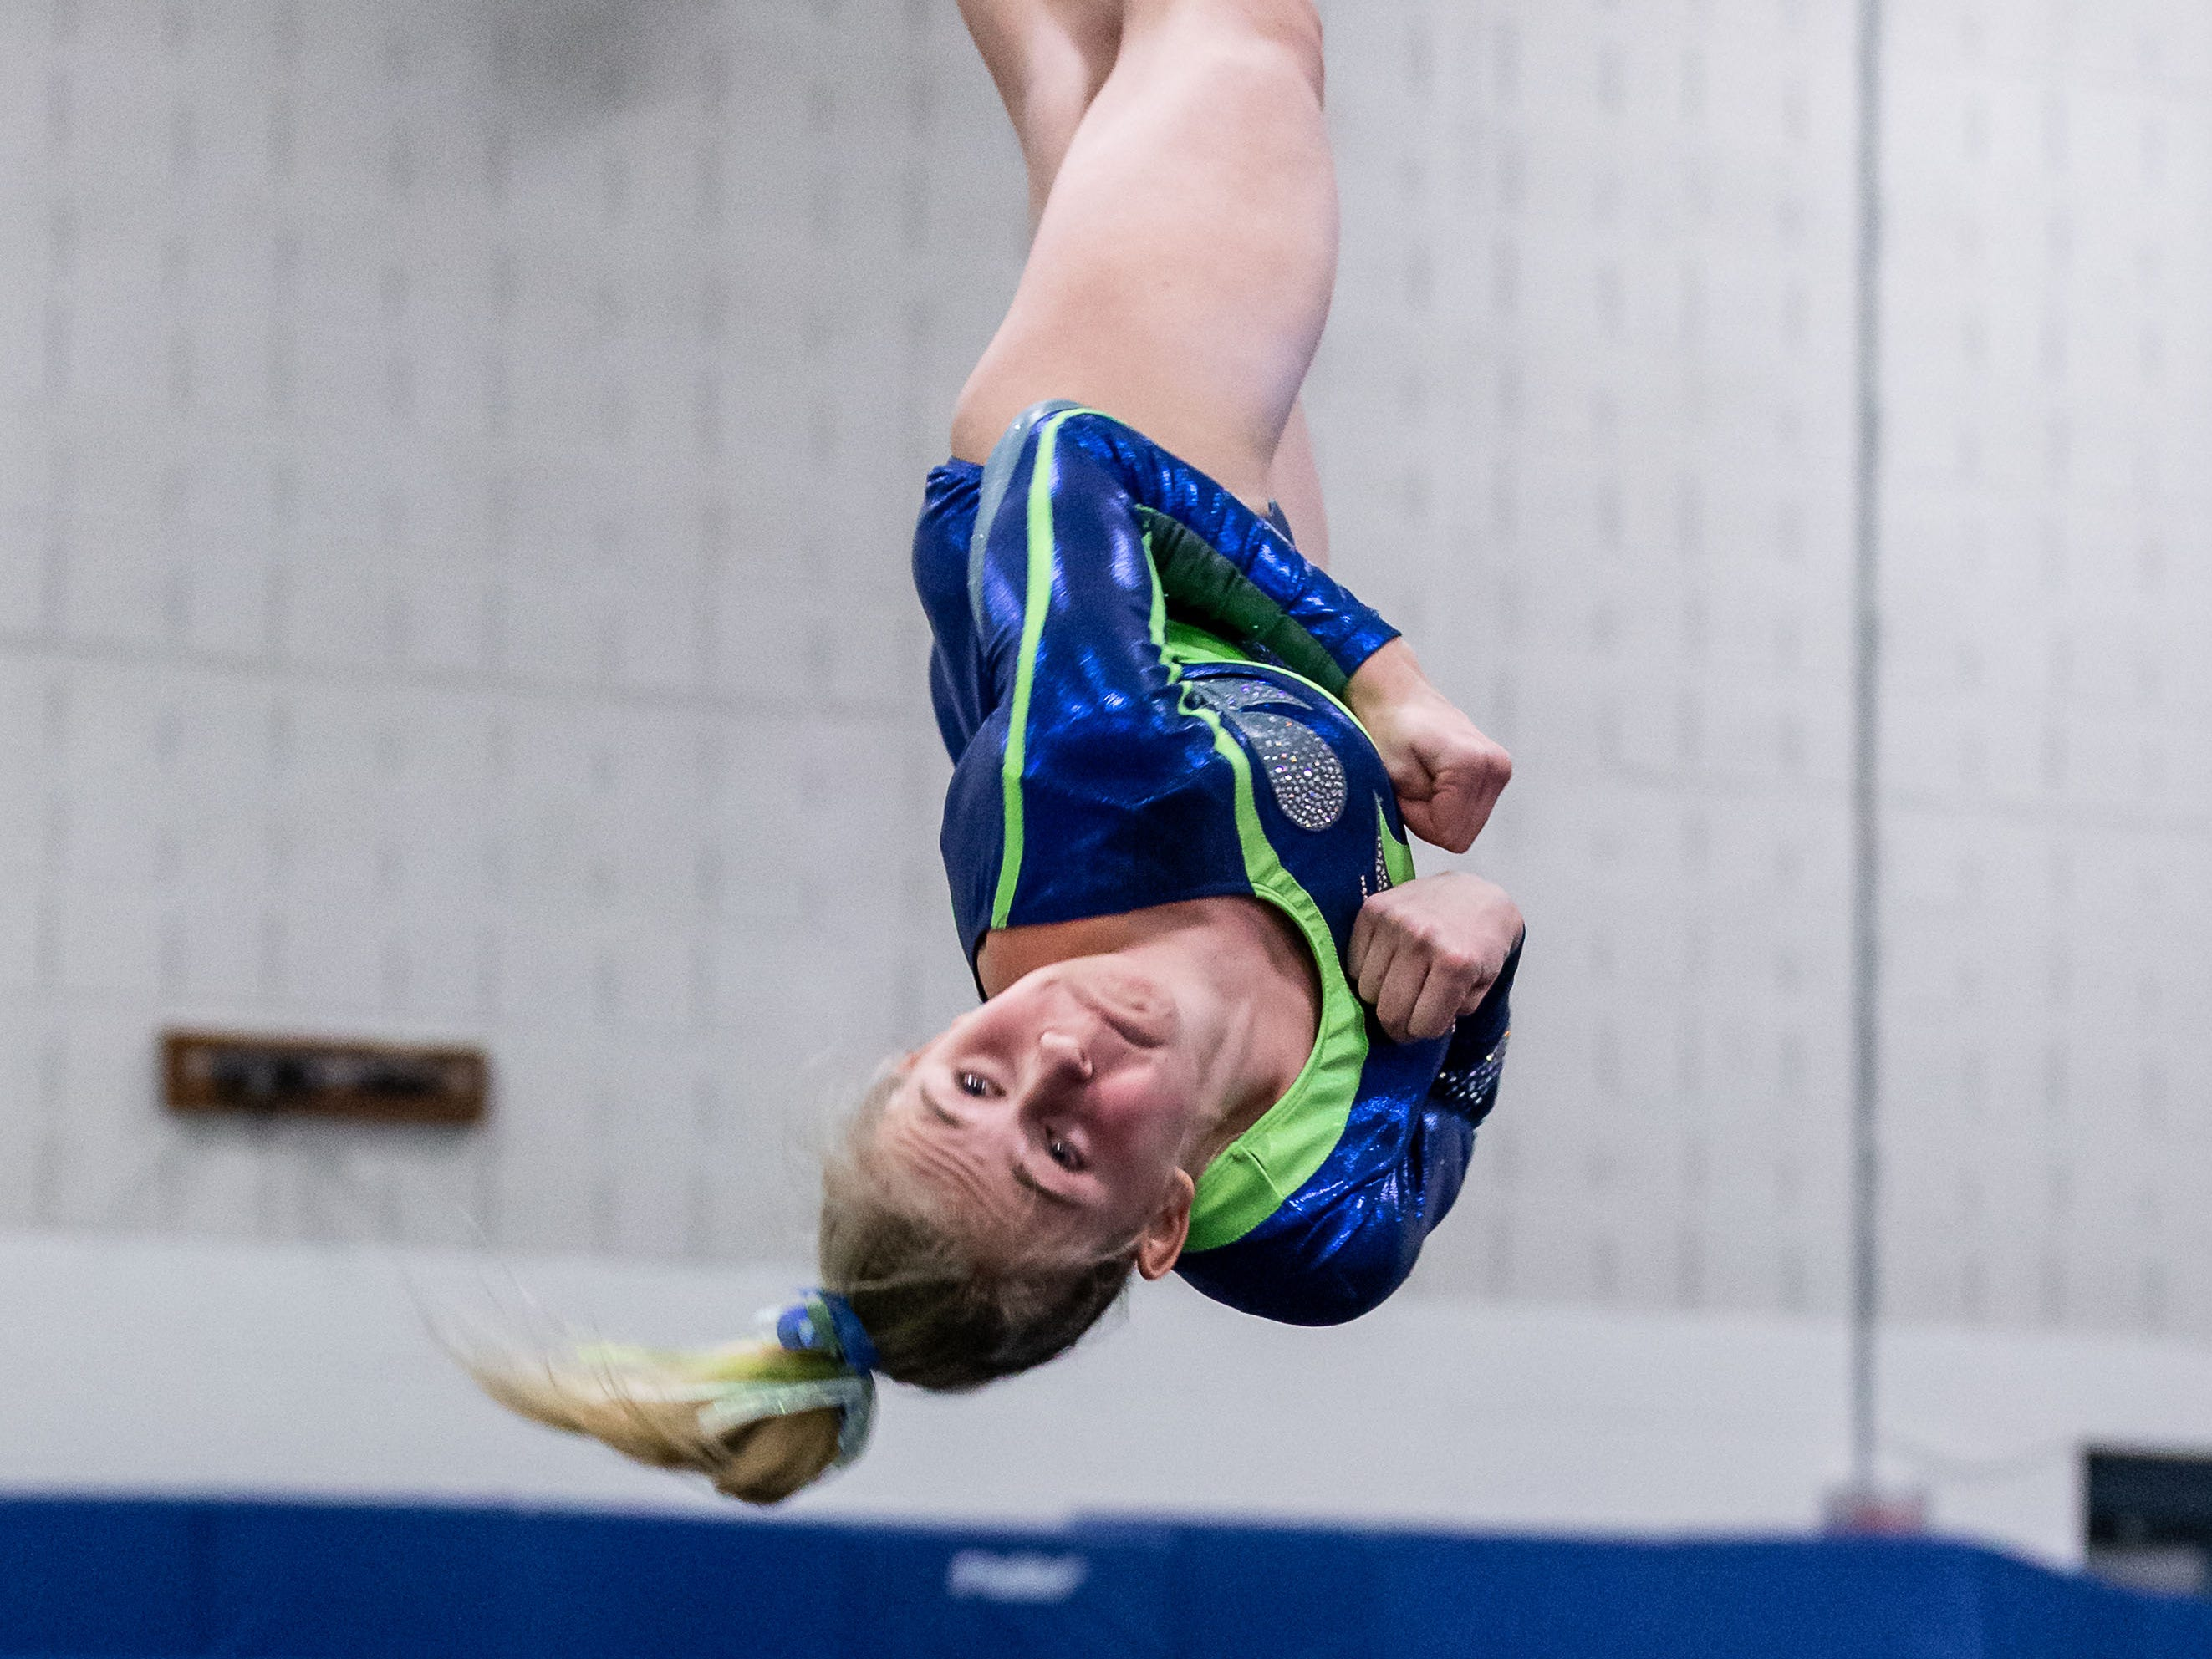 Whitefish Bay gymnast Anneh Britz competes on the floor during the meet at Nicolet on Thursday, Jan. 3, 2019.